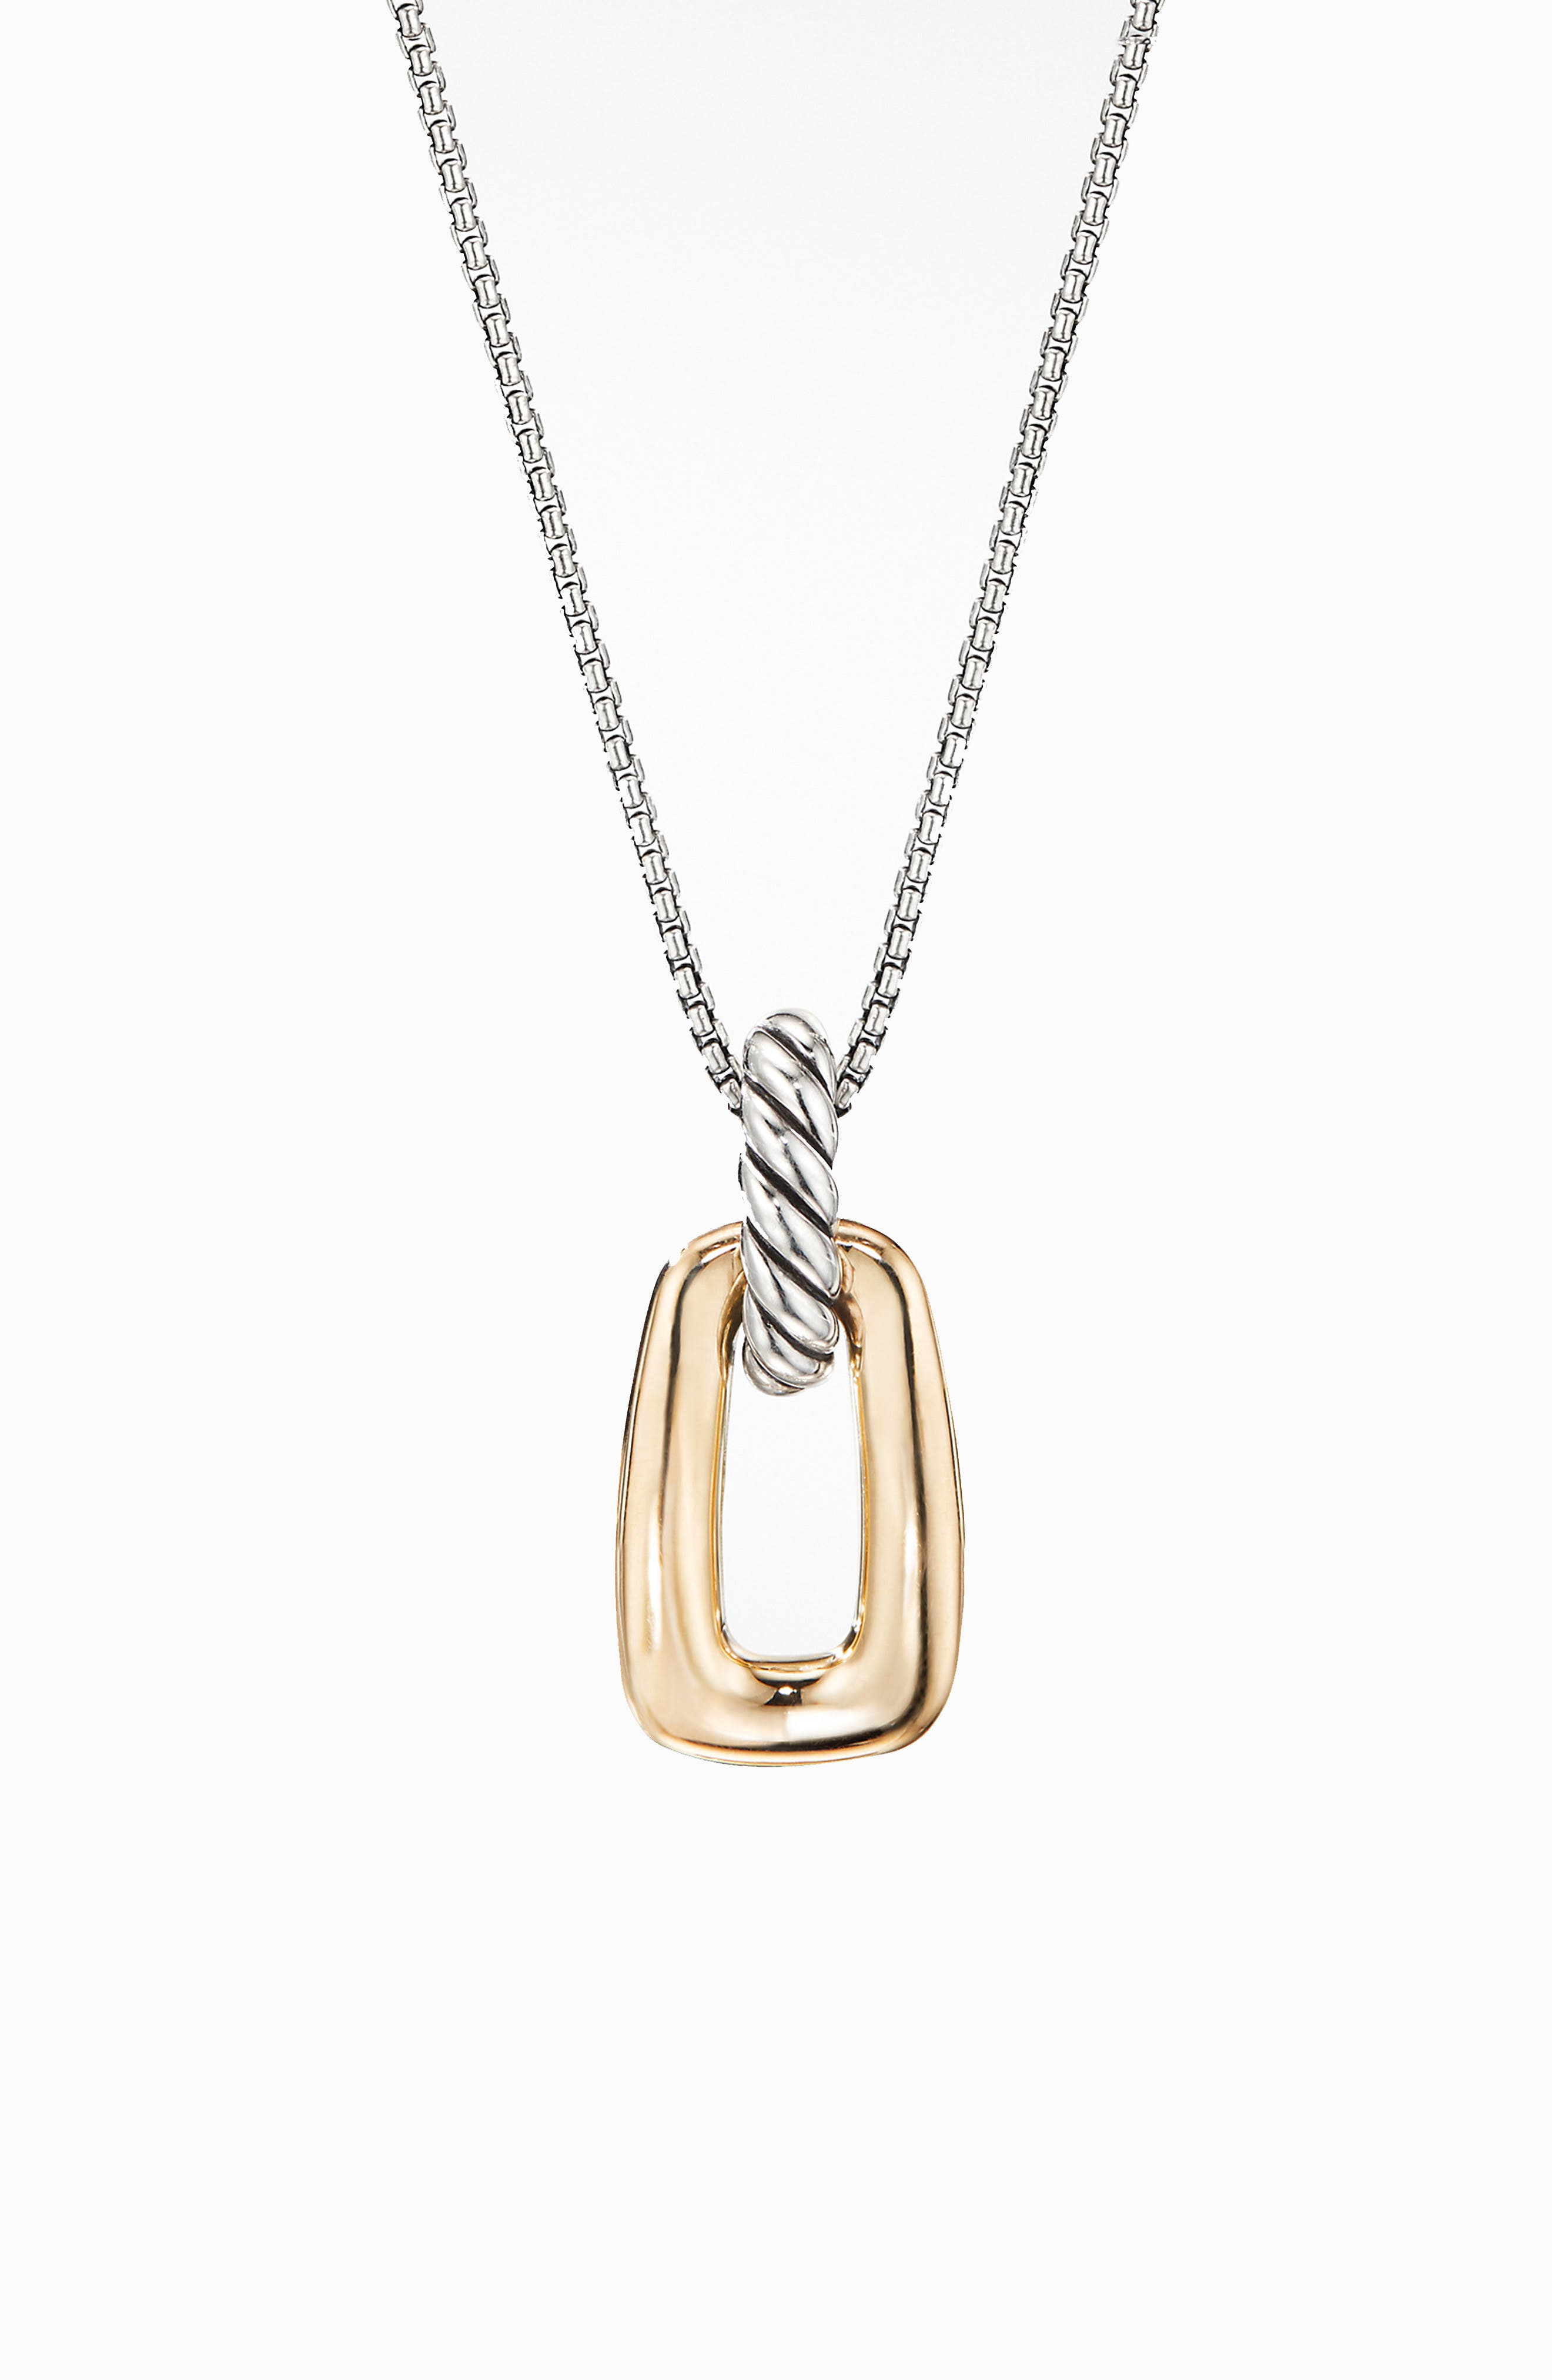 DAVID YURMAN,                             Wellesley Link Pendant Necklace with 18K Gold,                             Main thumbnail 1, color,                             18K YELLOW GOLD/ SILVER